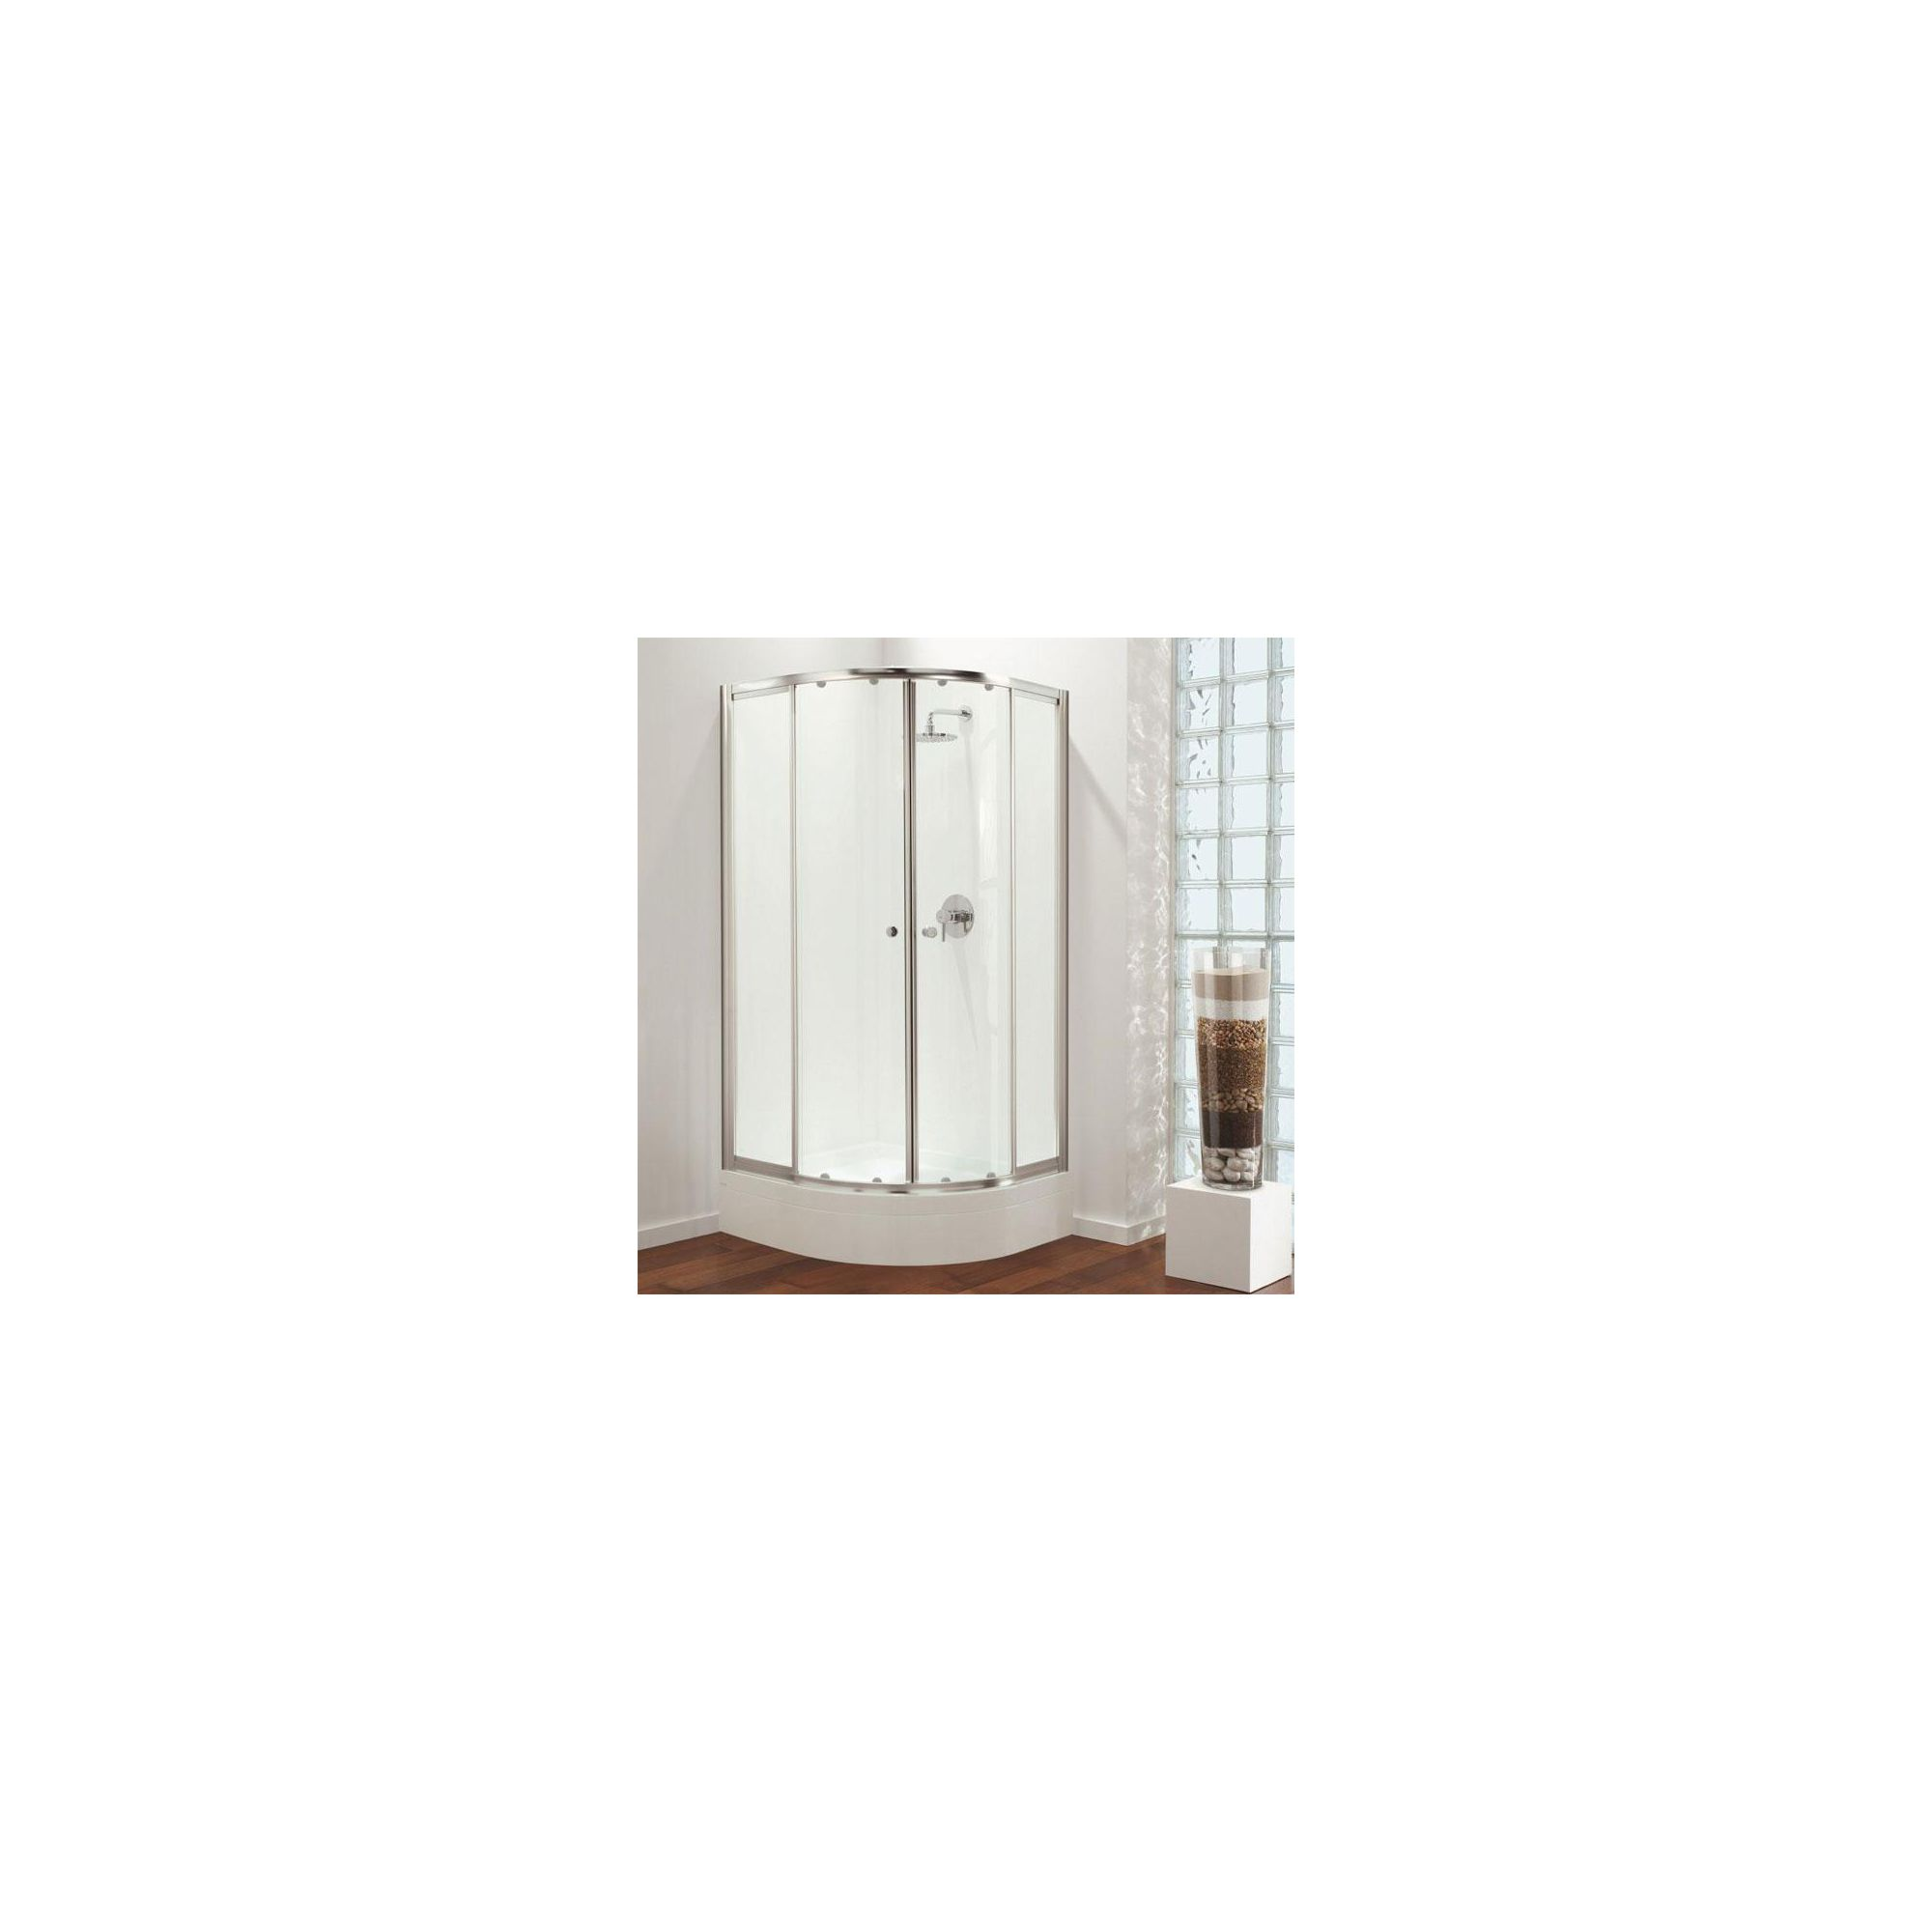 Coram GB Quadrant Shower Door and Frame 900mm x 900mm (including Riser Shower Tray) at Tesco Direct